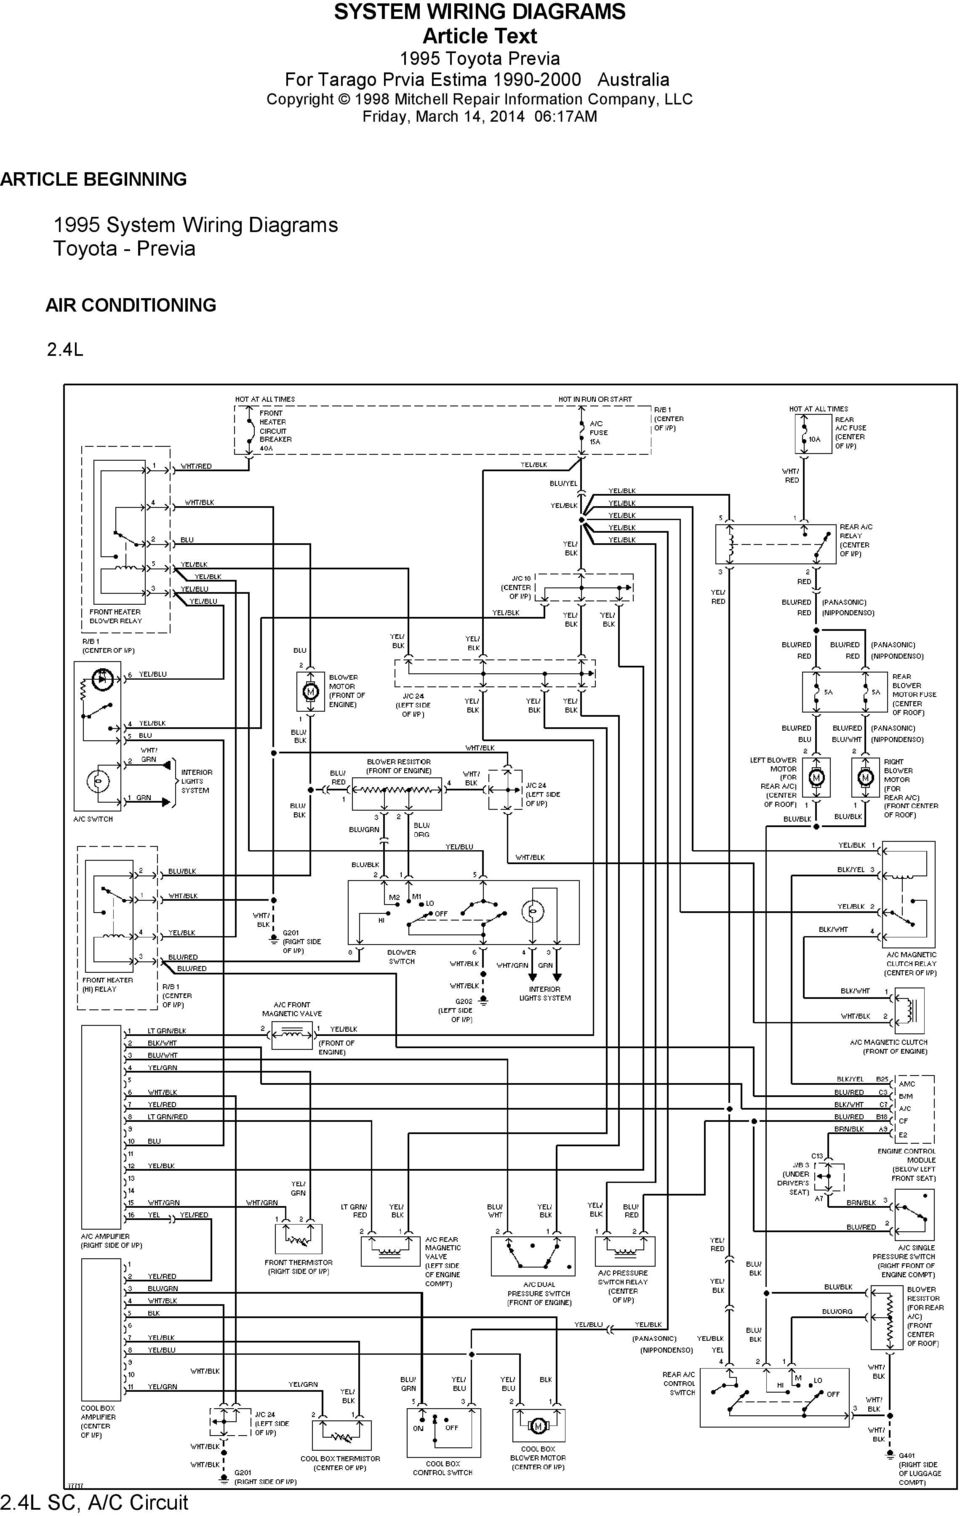 Toyota Previa Electrical Wiring Diagram